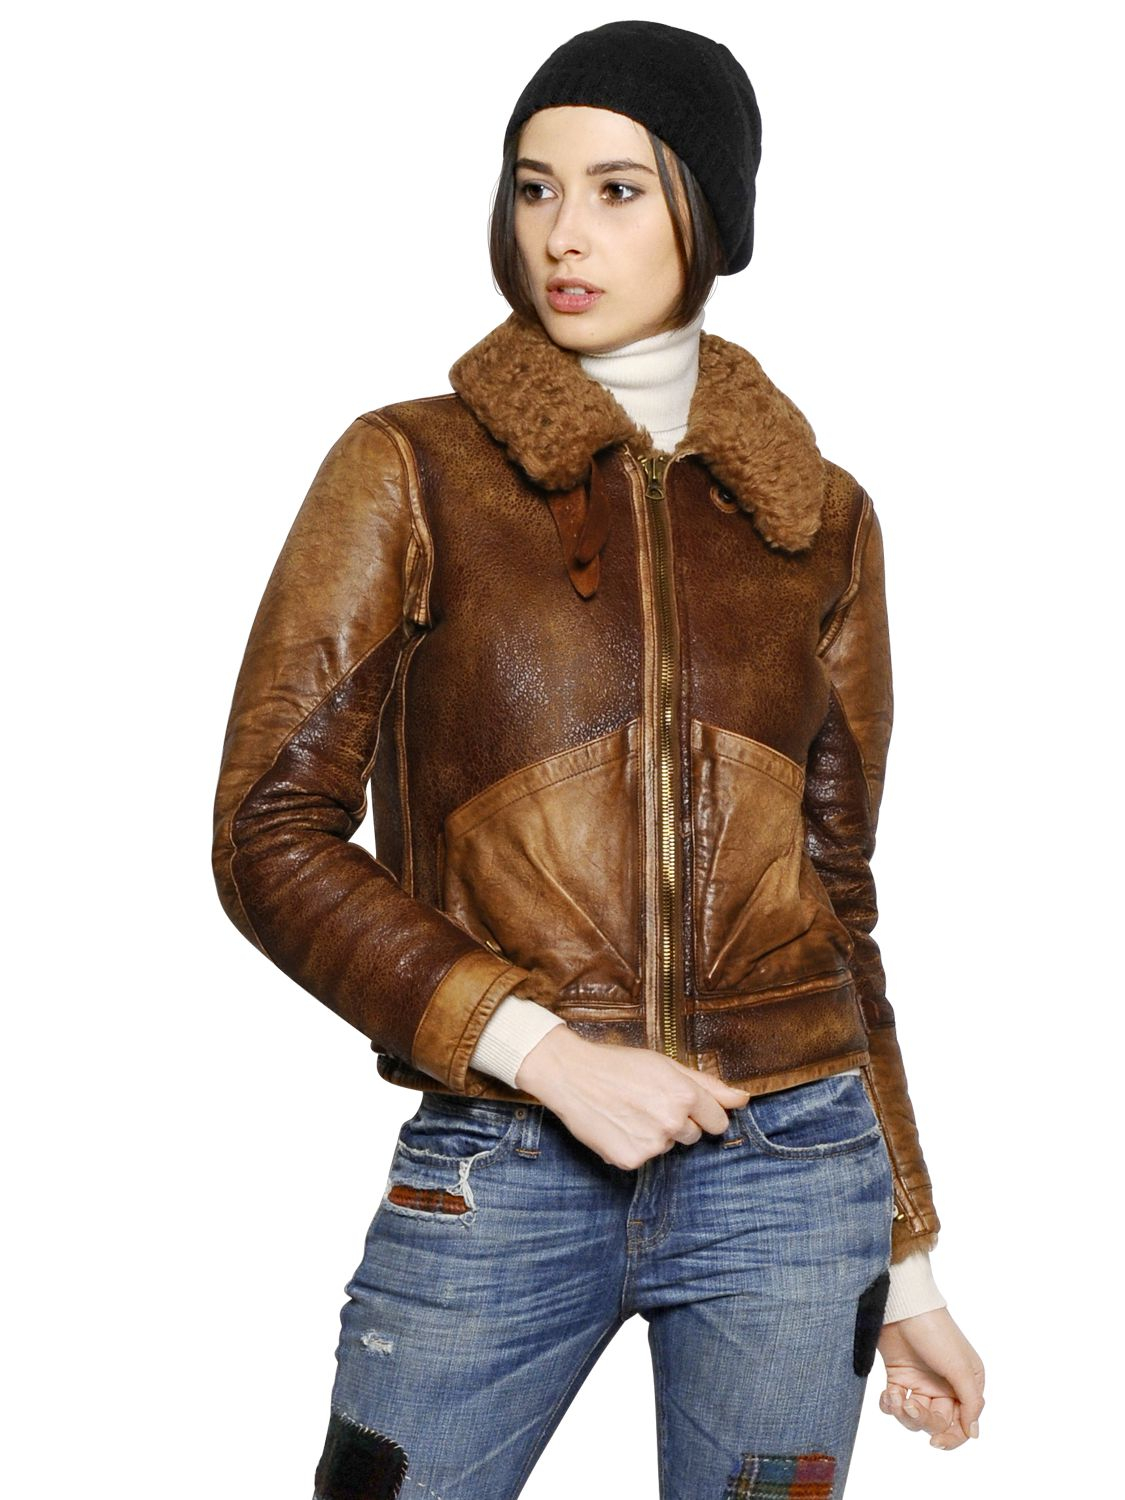 Polo Ralph Lauren Shearling Leather Jacket in Brown - Lyst 9bb4e56863ab2